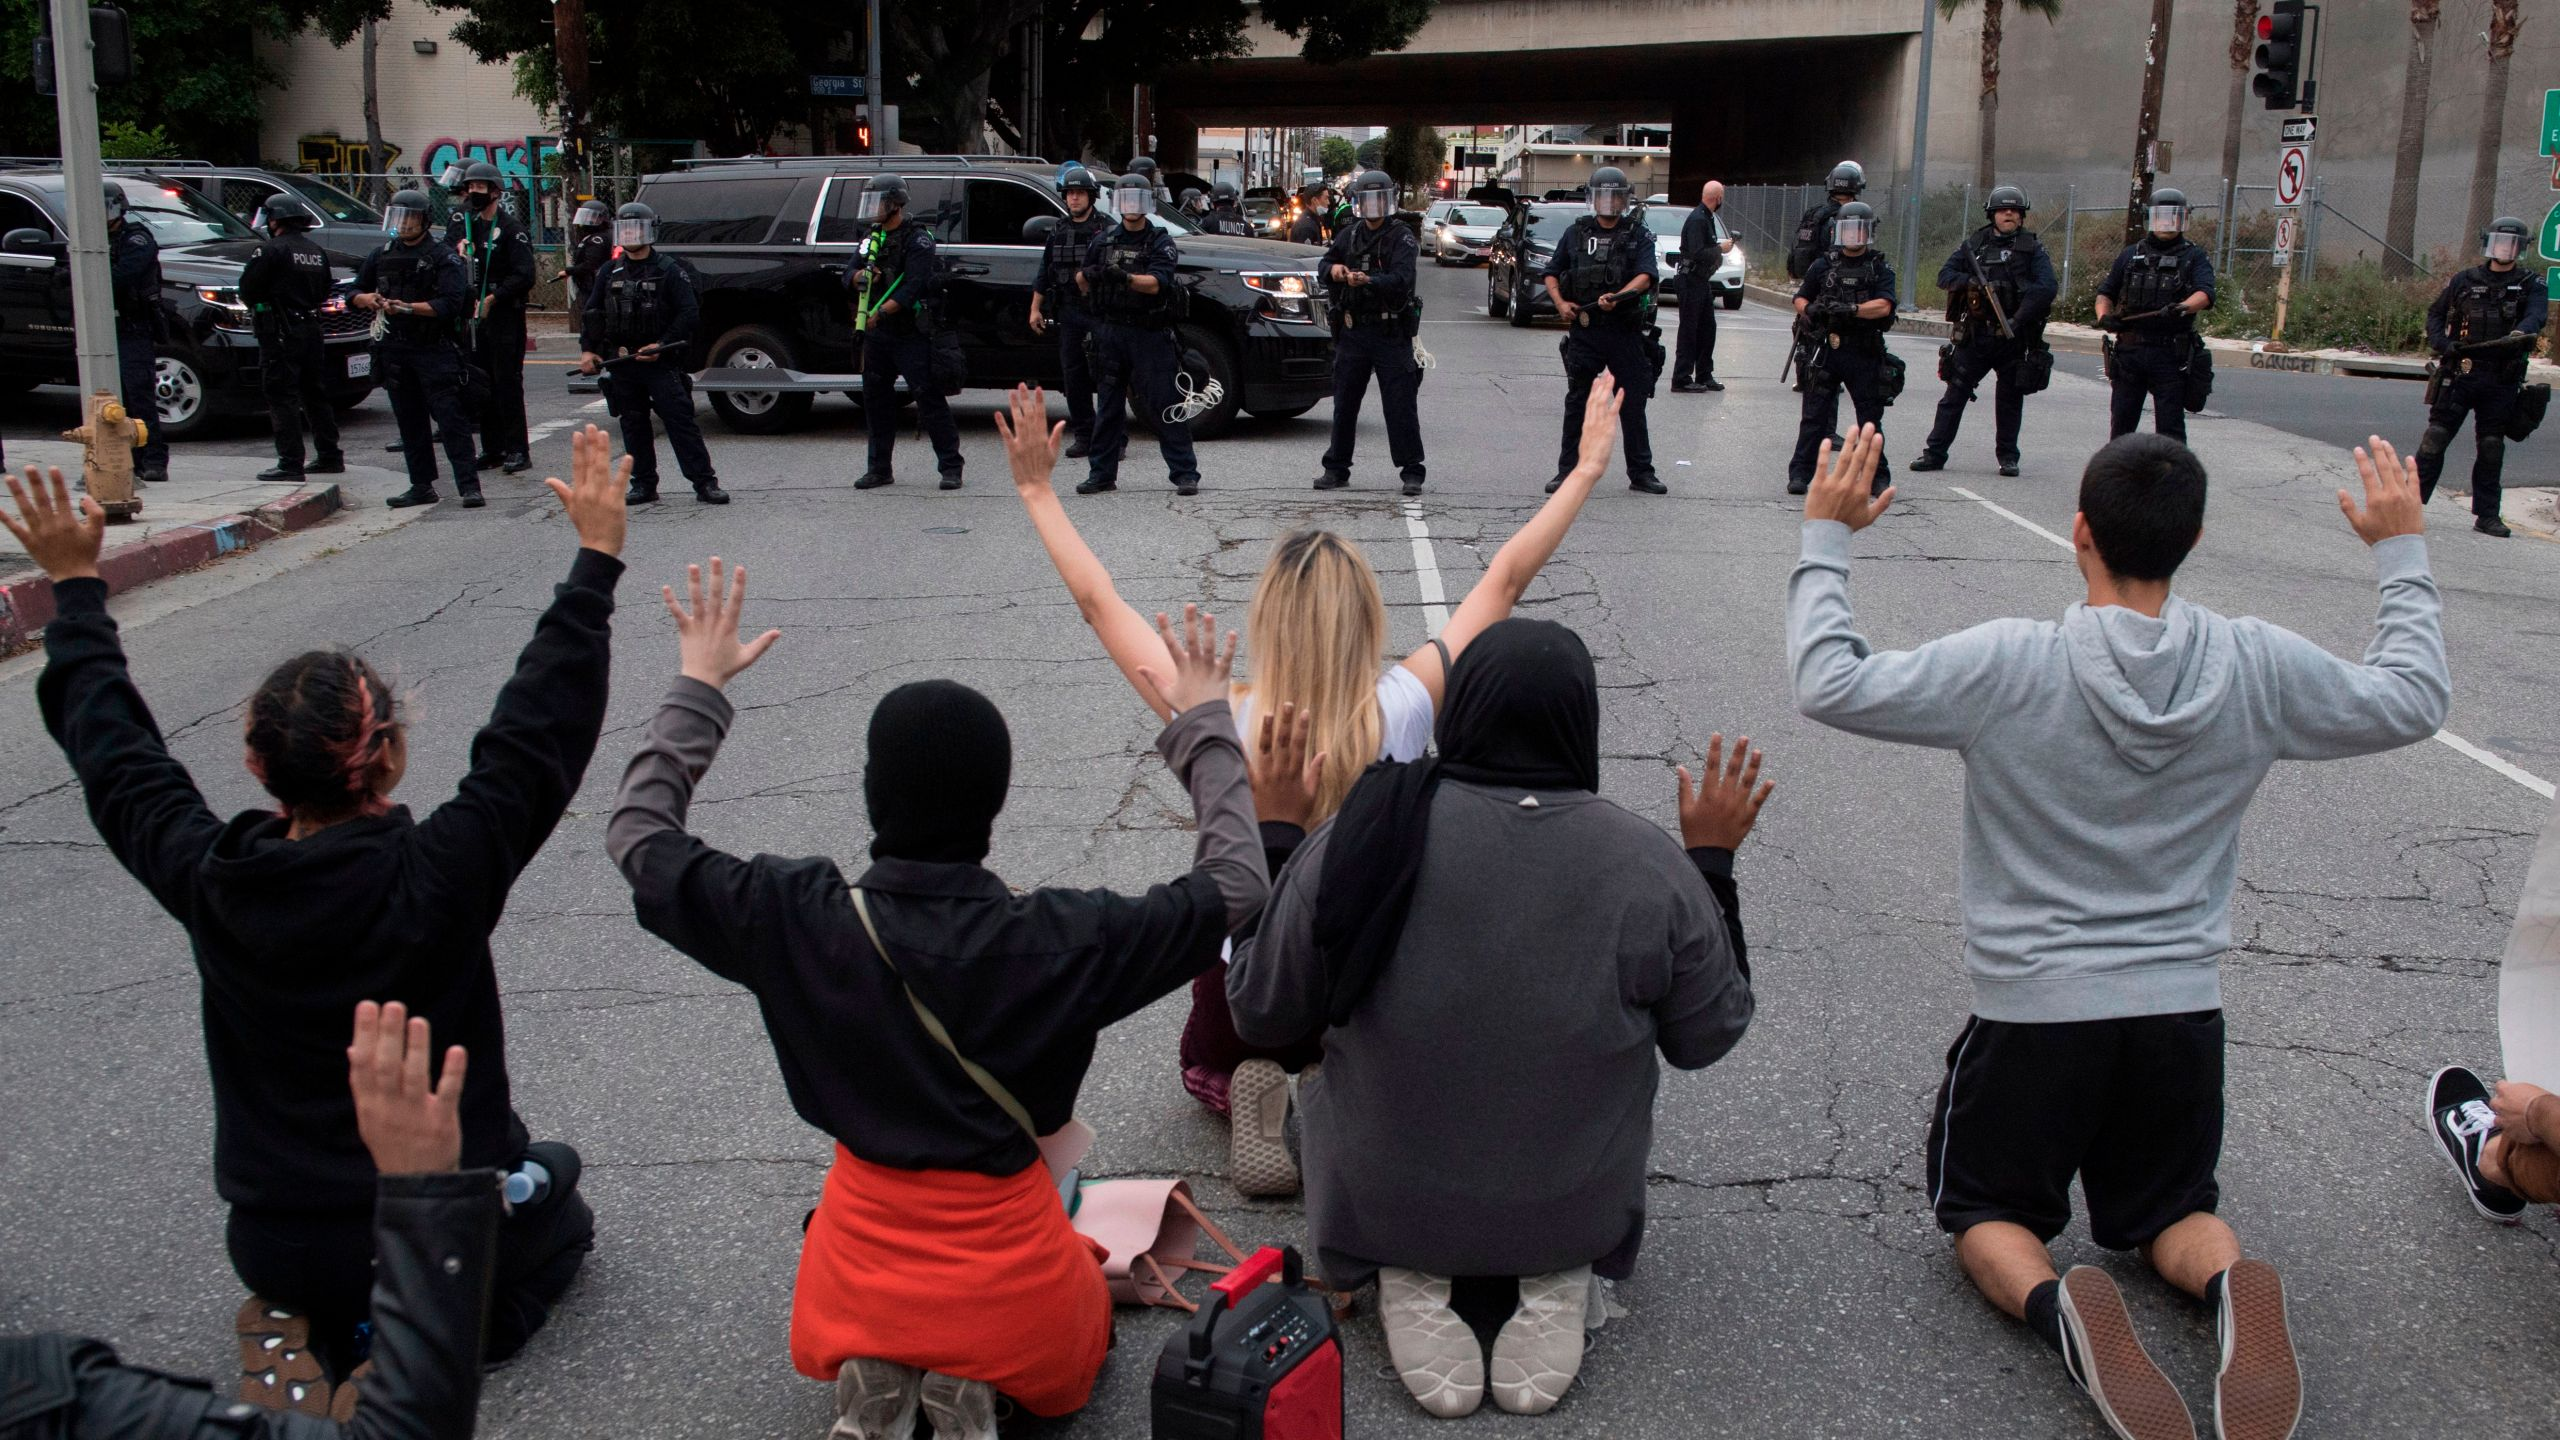 Demonstrators face a row of police as they block a road leading to the 110 freeway to protest the death of George Floyd, in downtown Los Angeles on May 29, 2020.(MARK RALSTON/AFP via Getty Images)